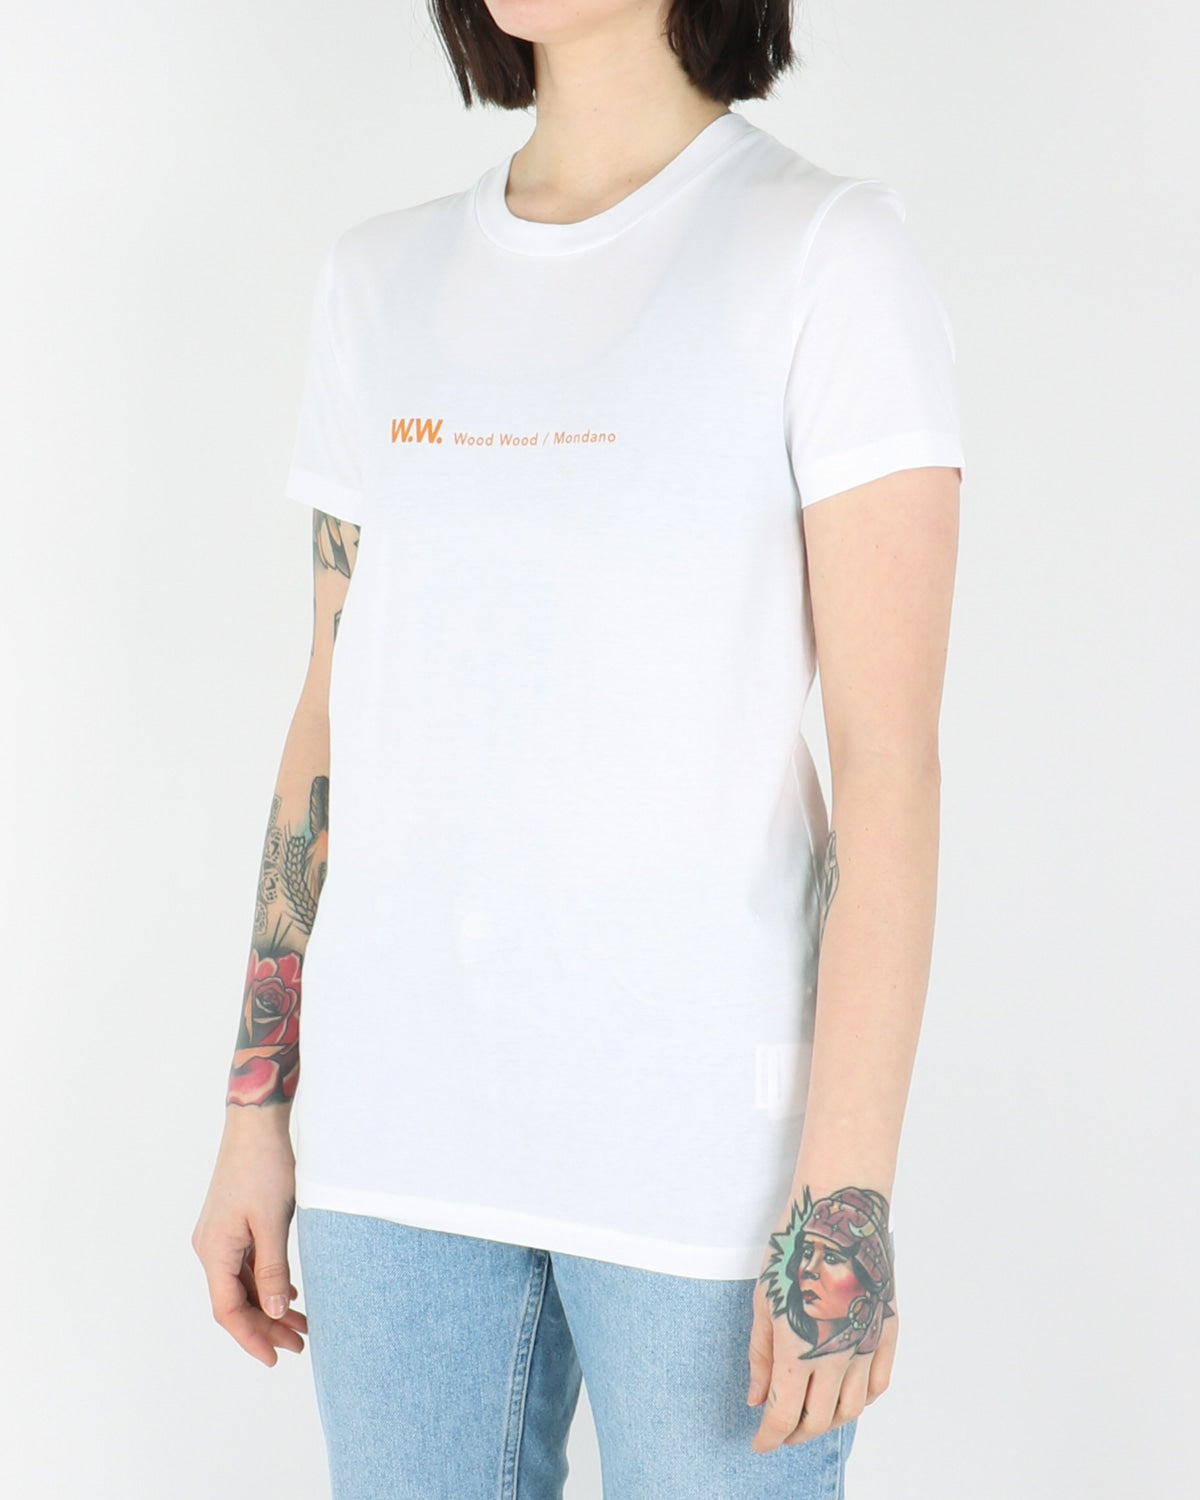 wood wood_eden t-shirt_bright white_view_2_3